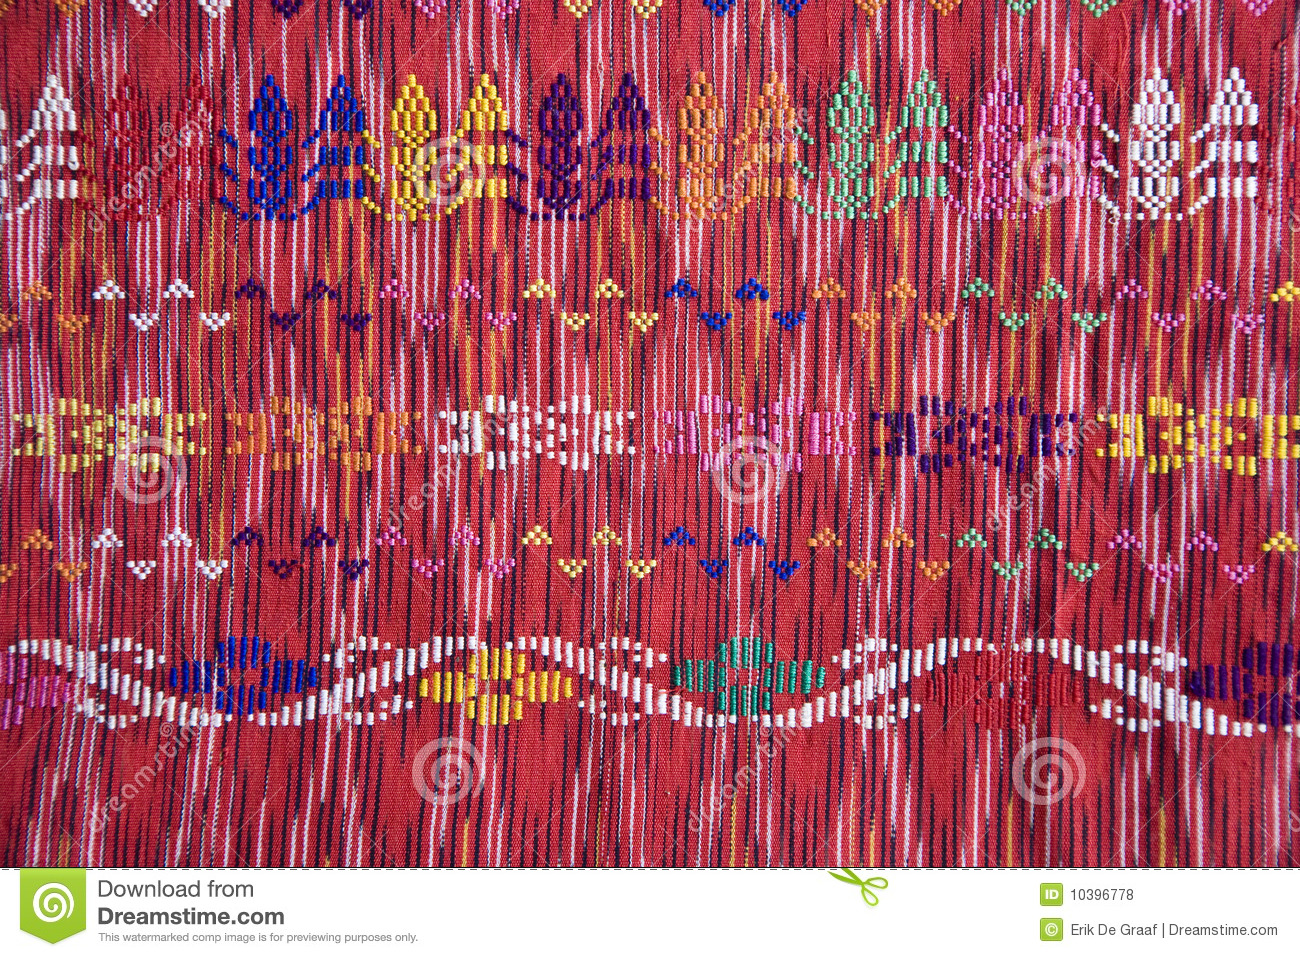 Ulos background stock photo. Image of colorful, abstracts ...